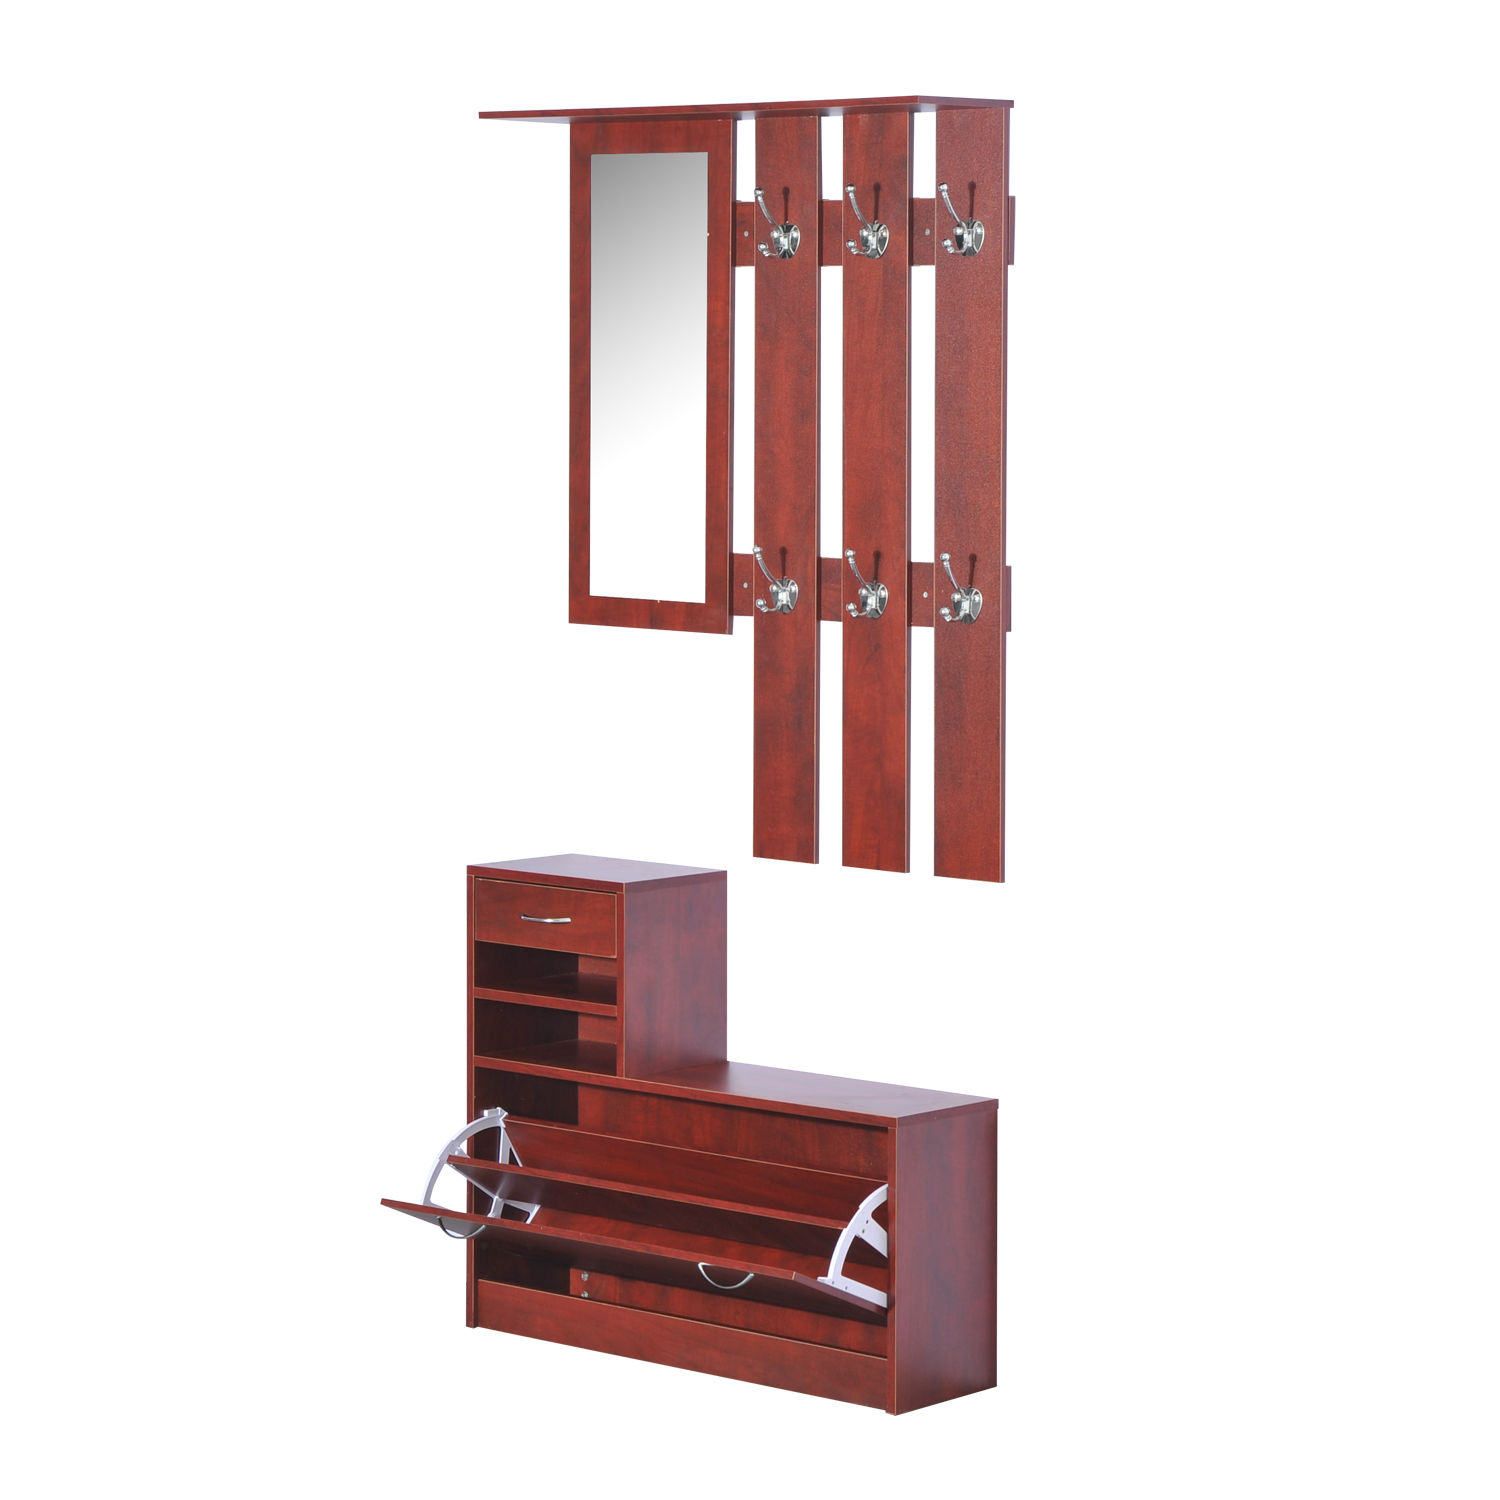 2pc entryway hall coat rack shoe storage bench organizer. Black Bedroom Furniture Sets. Home Design Ideas